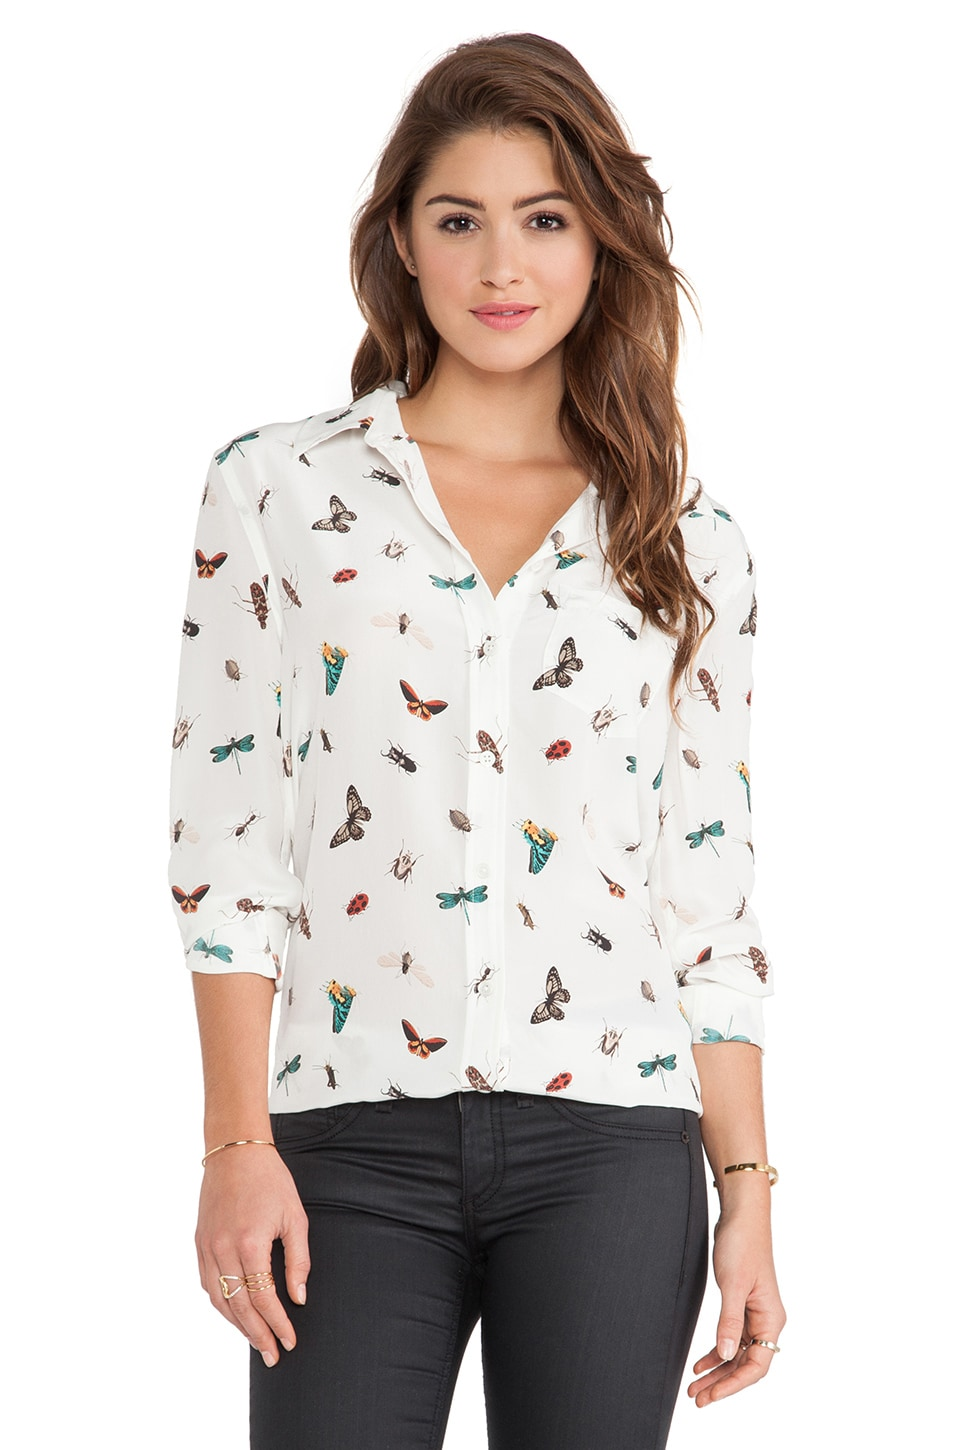 Equipment Reese Complex Insect Print Blouse in Nature White